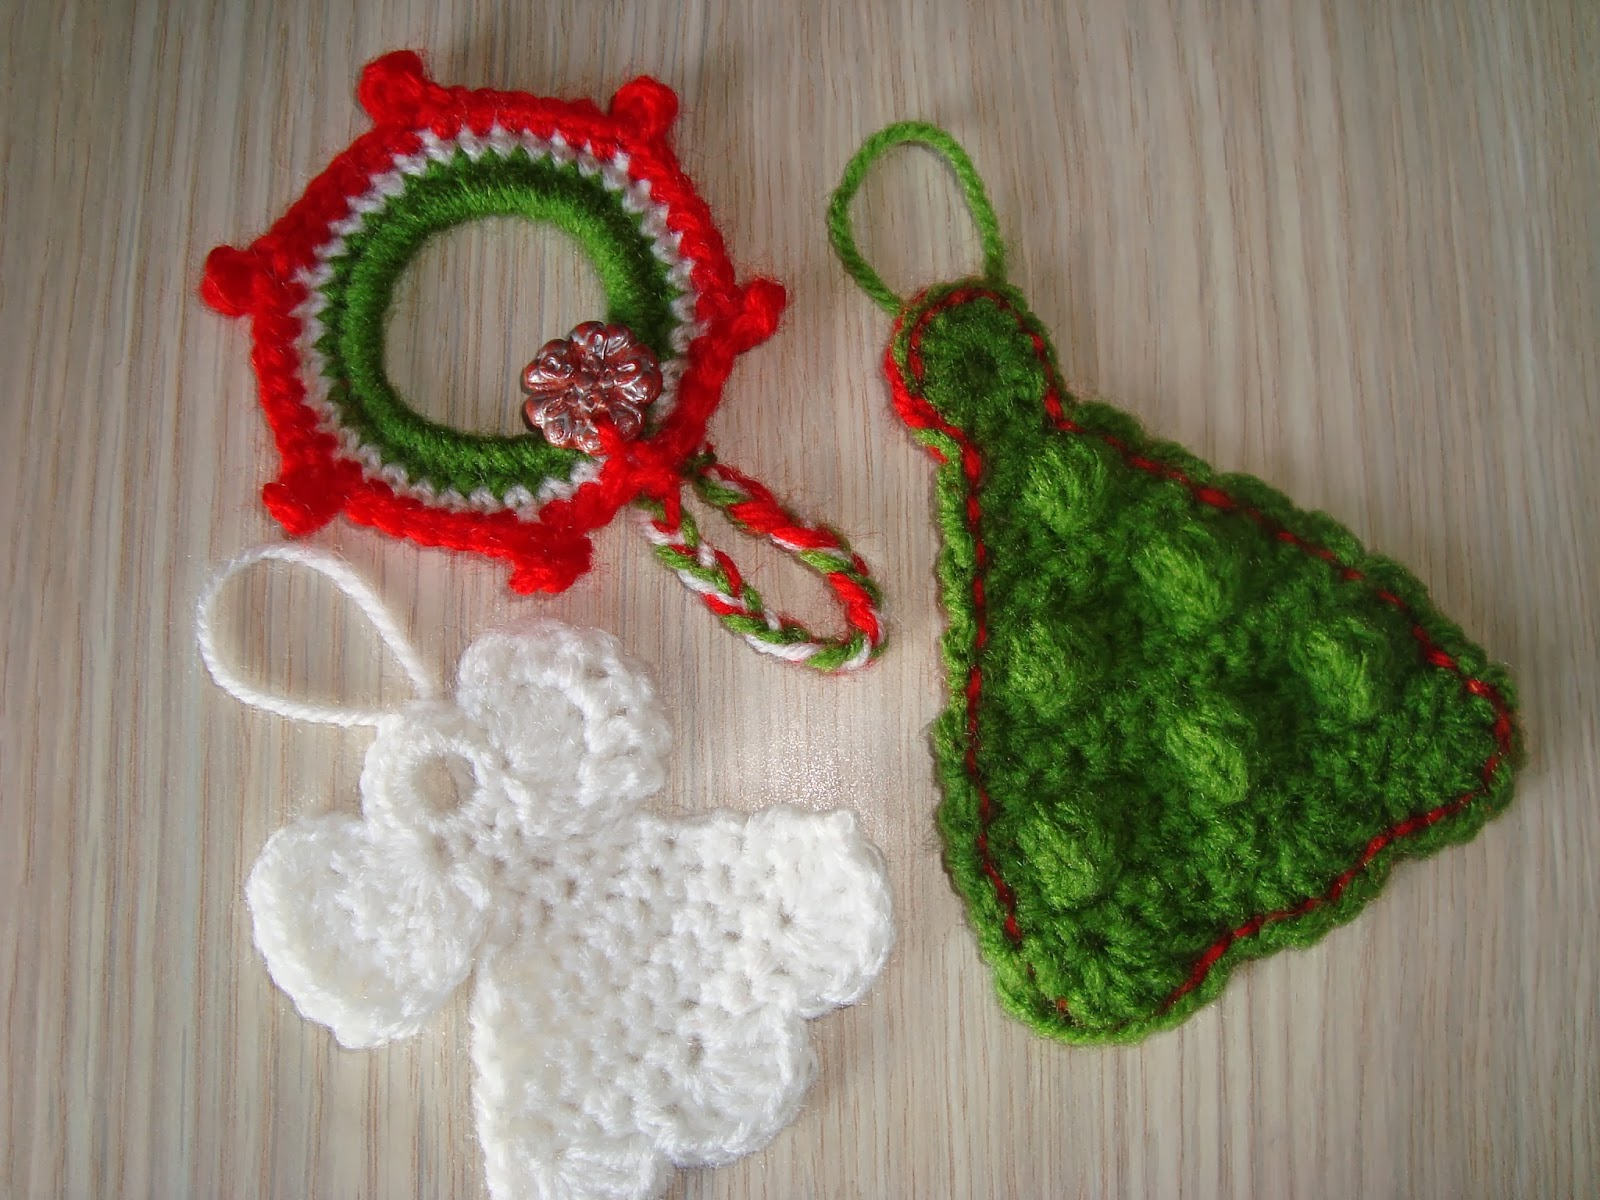 Crochet Patterns Xmas : Handmade by Camelia: Pattern: Three Ornaments Crocheted for Christmas